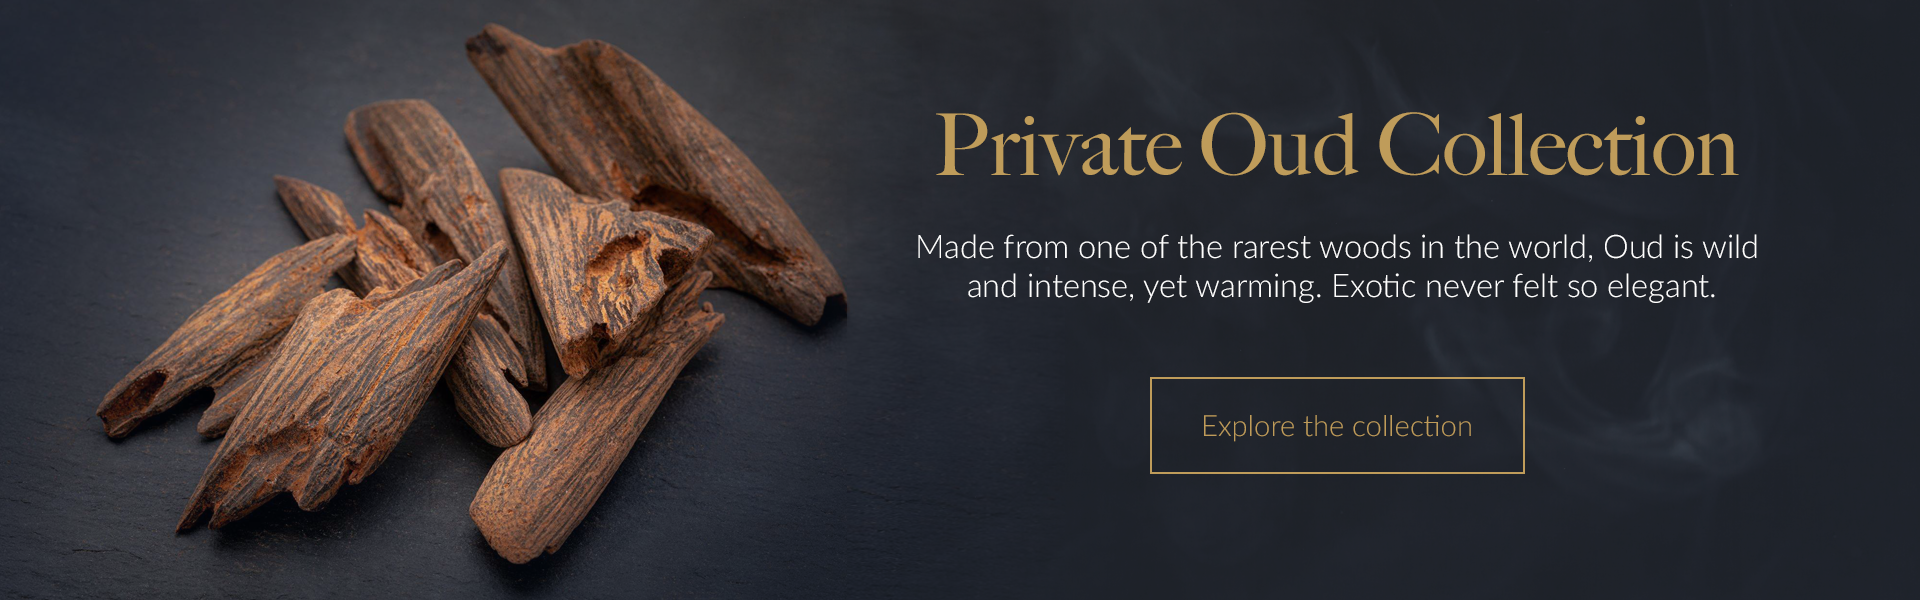 Private Oud Collection